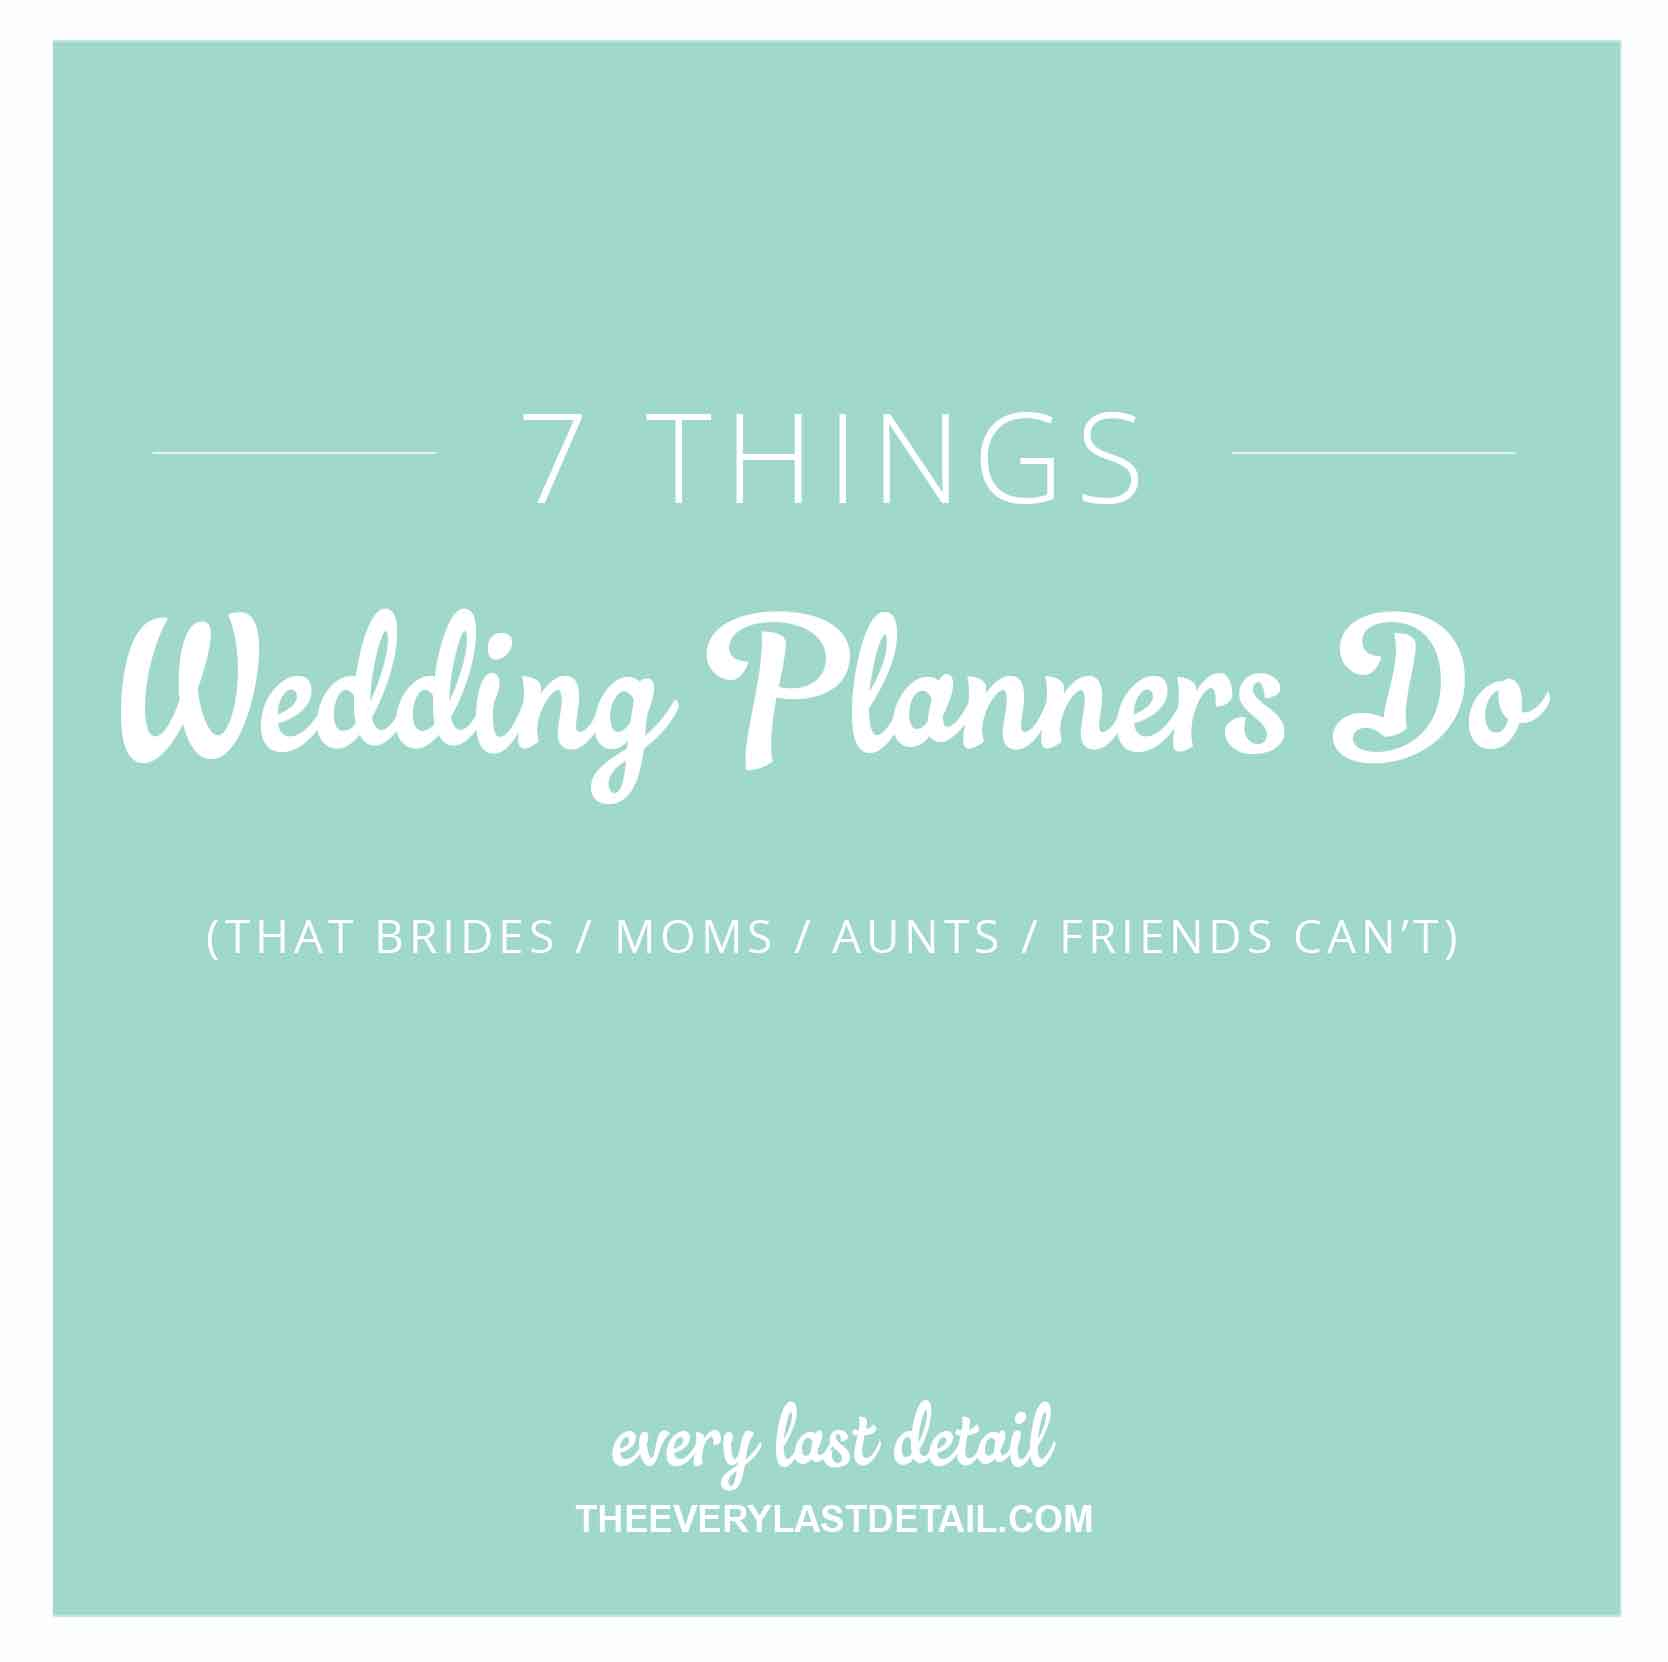 7 Things Wedding Planners Do (That Brides/Moms/Aunts/Friends Cant) via TheELD.com